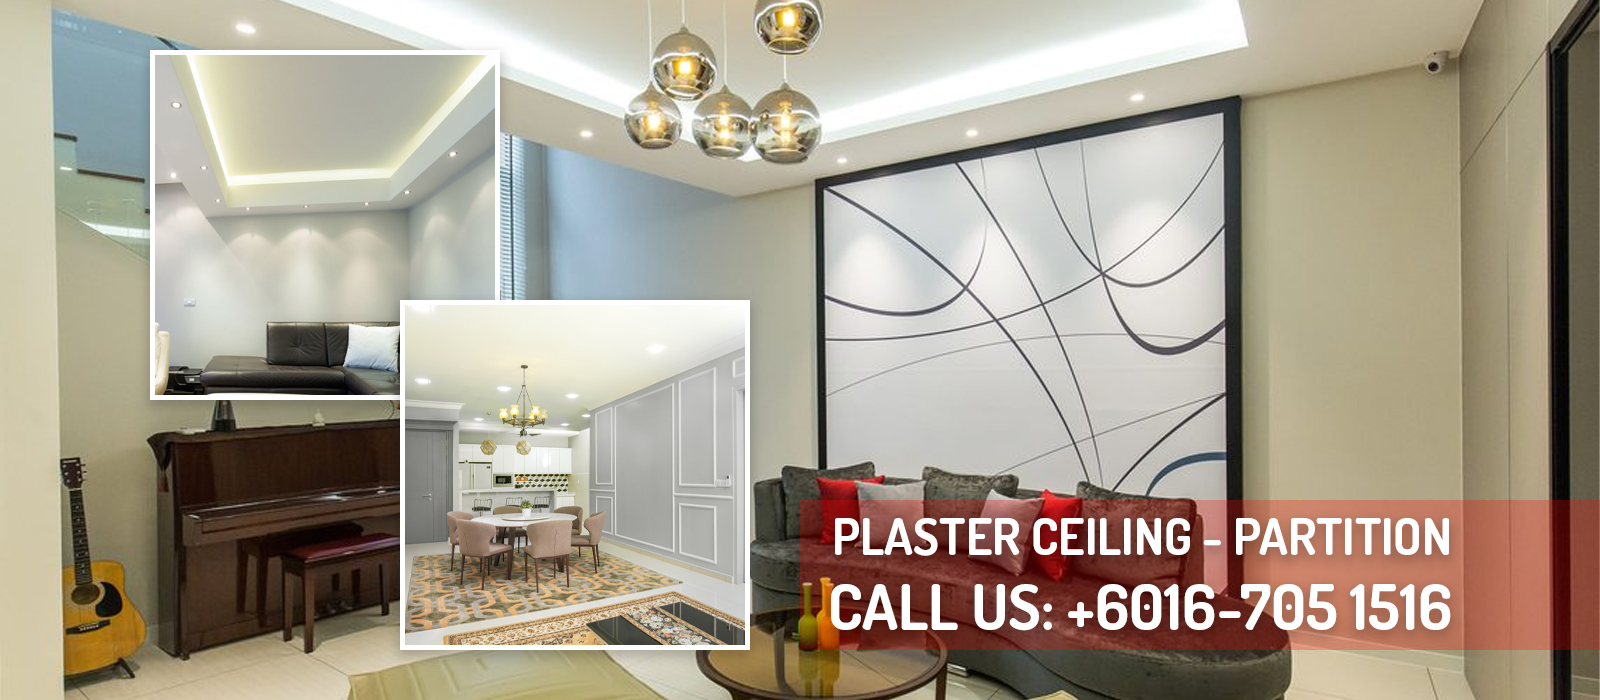 DH Plaster Ceiling & Renovation